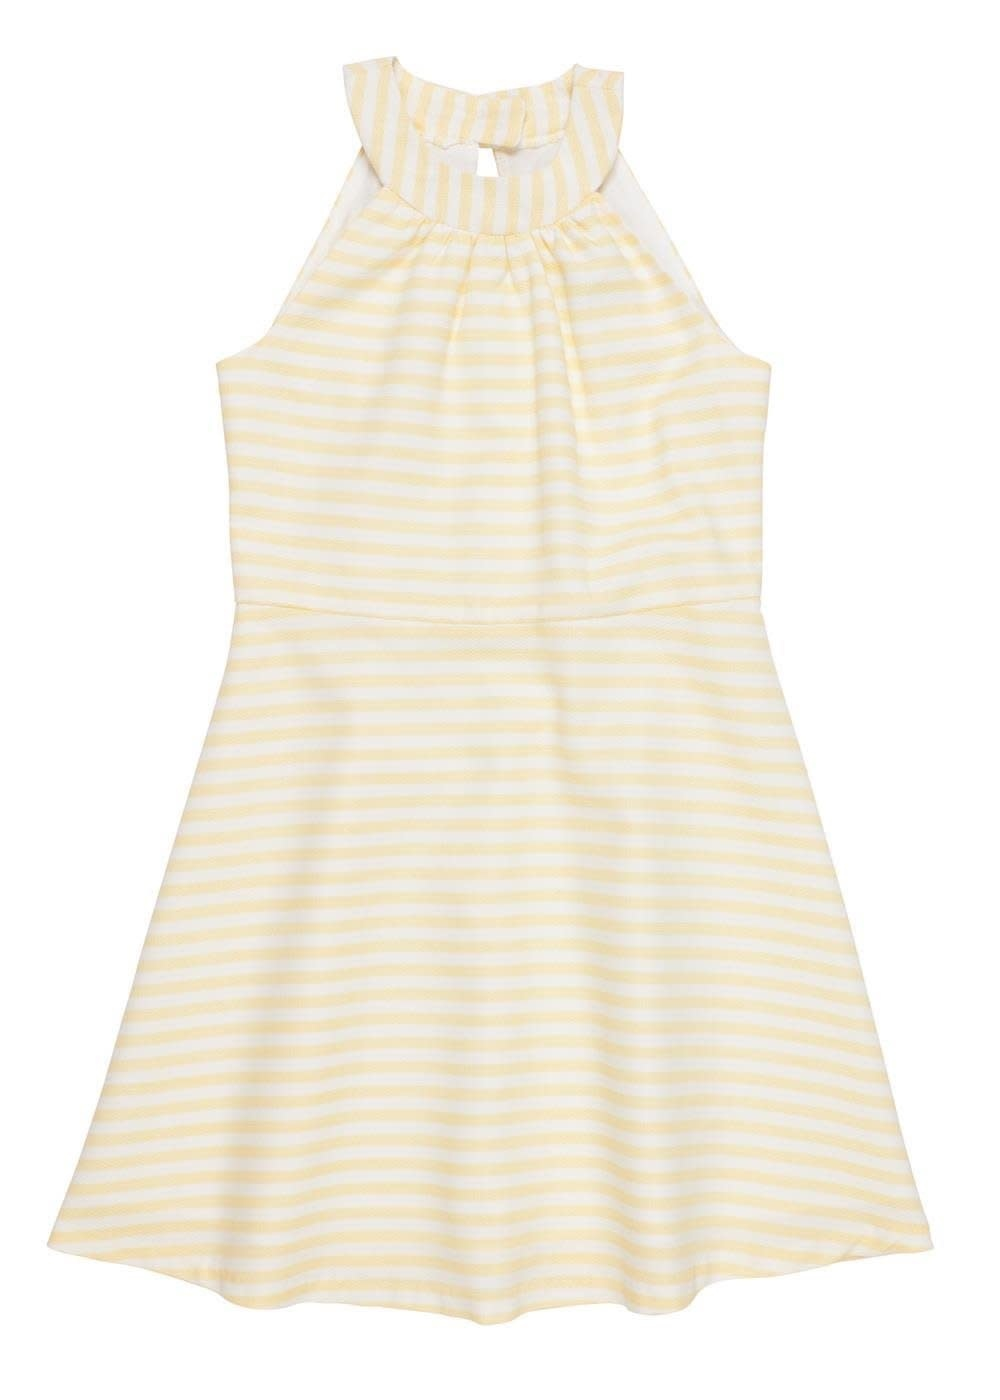 Florence Eiseman Yellow Stripe Pique Dress